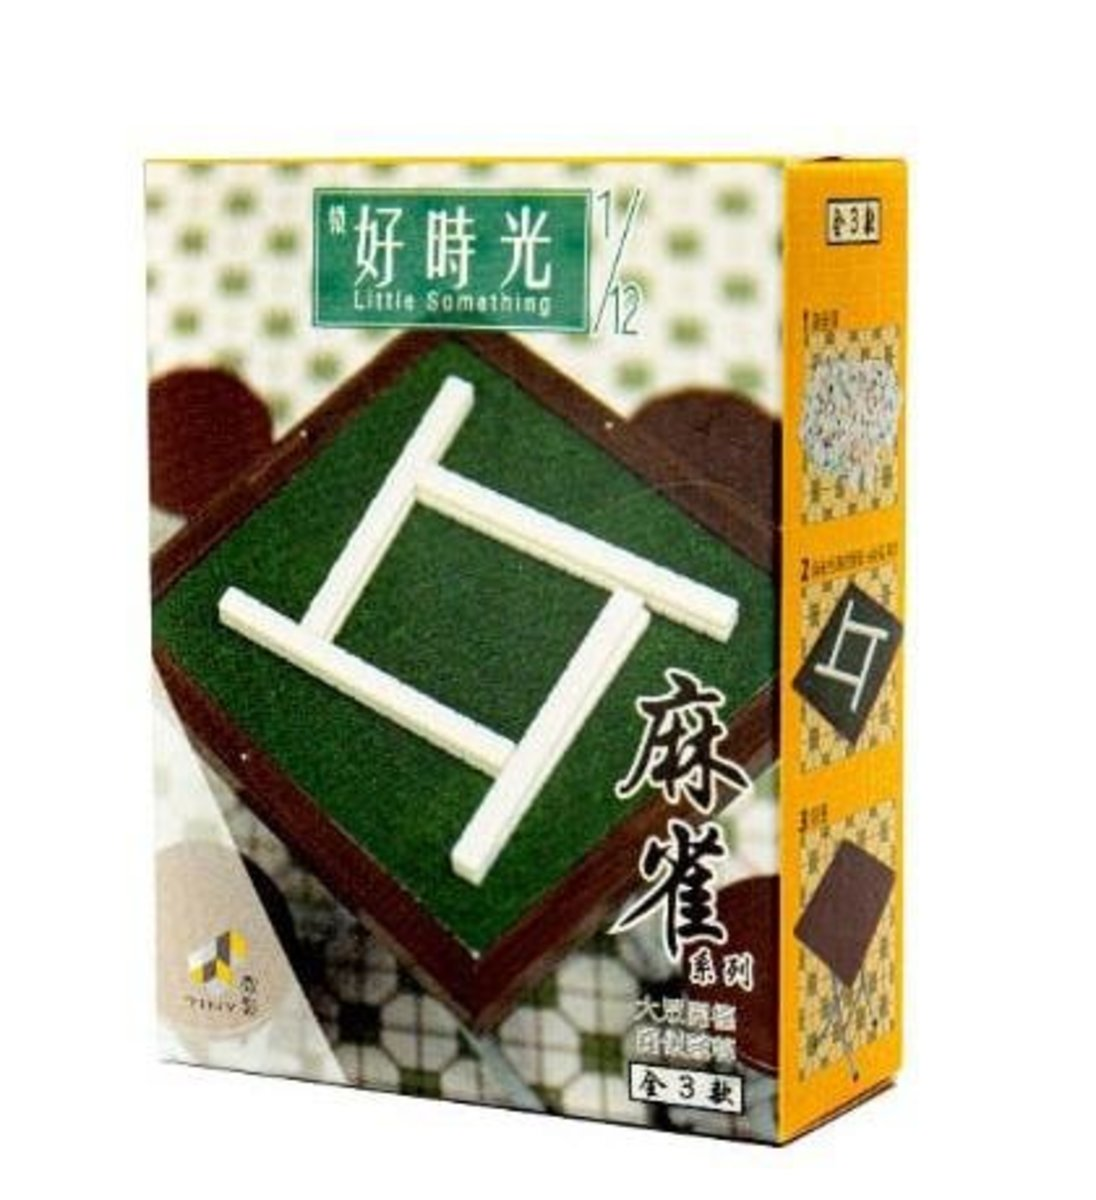 1/12 Little Something - Mahjong  Board with suede mat, and Mahjong Row